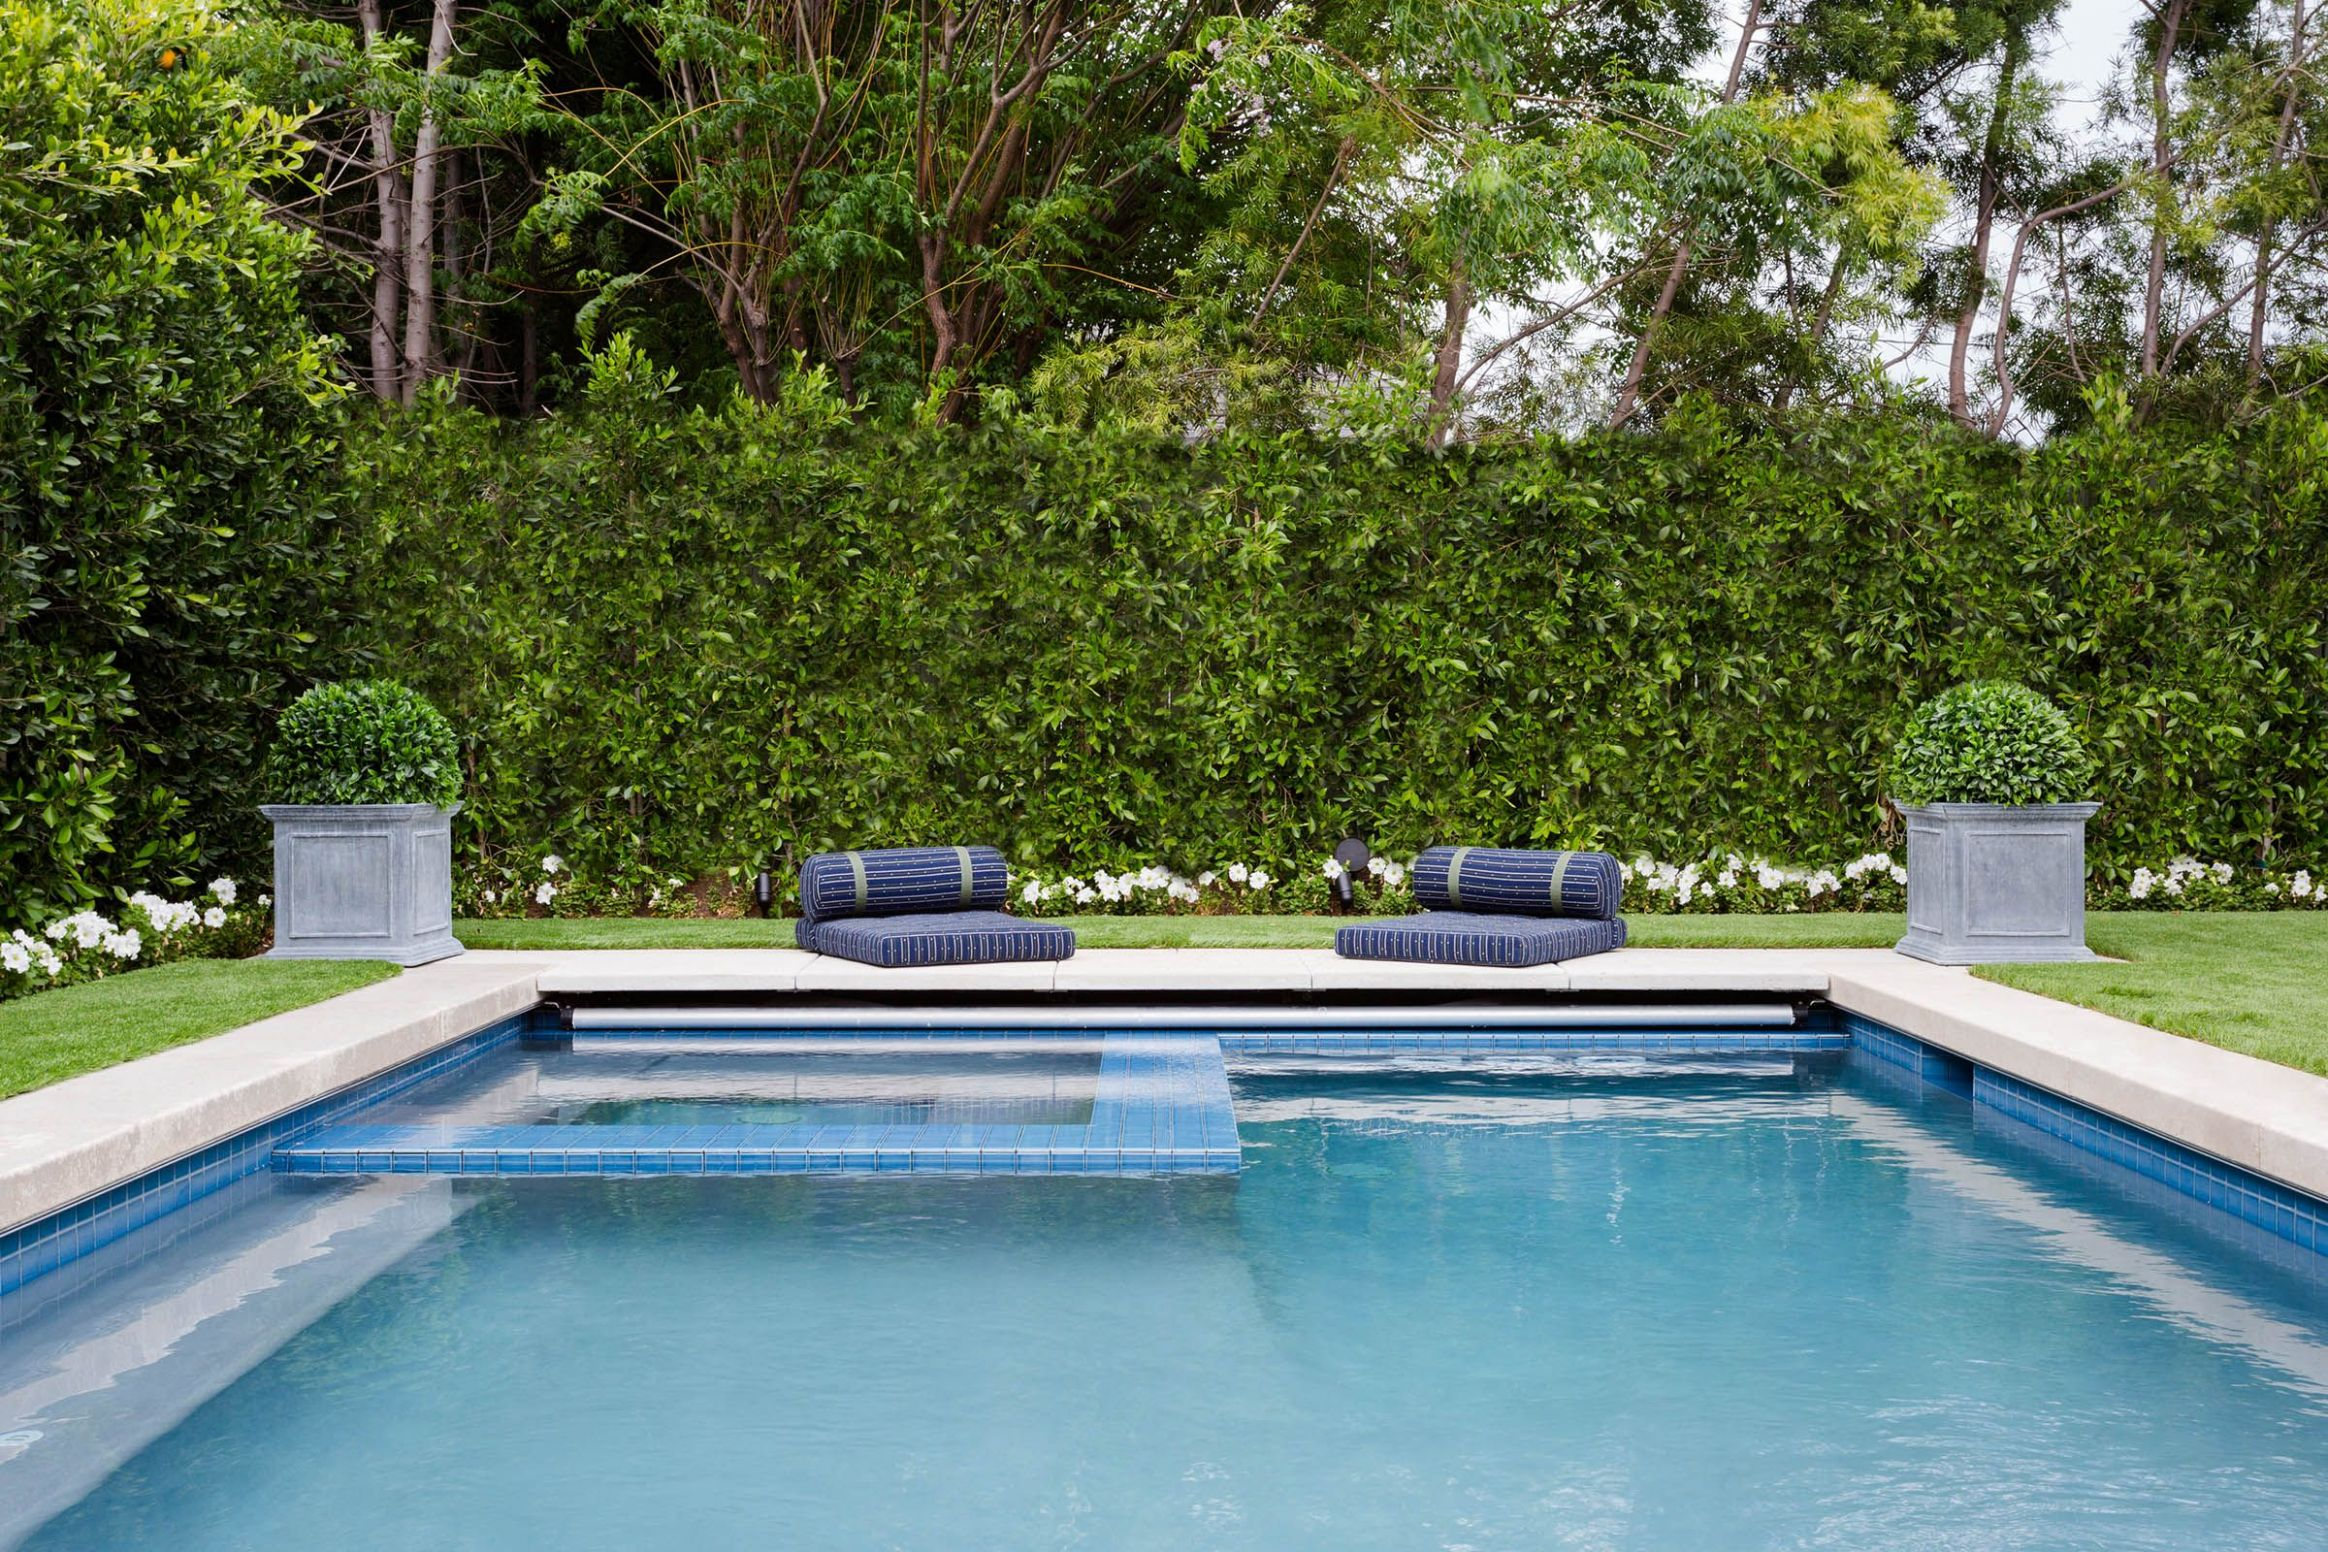 11 Best Pool Designs - Beautiful Swimming Pool Ideas